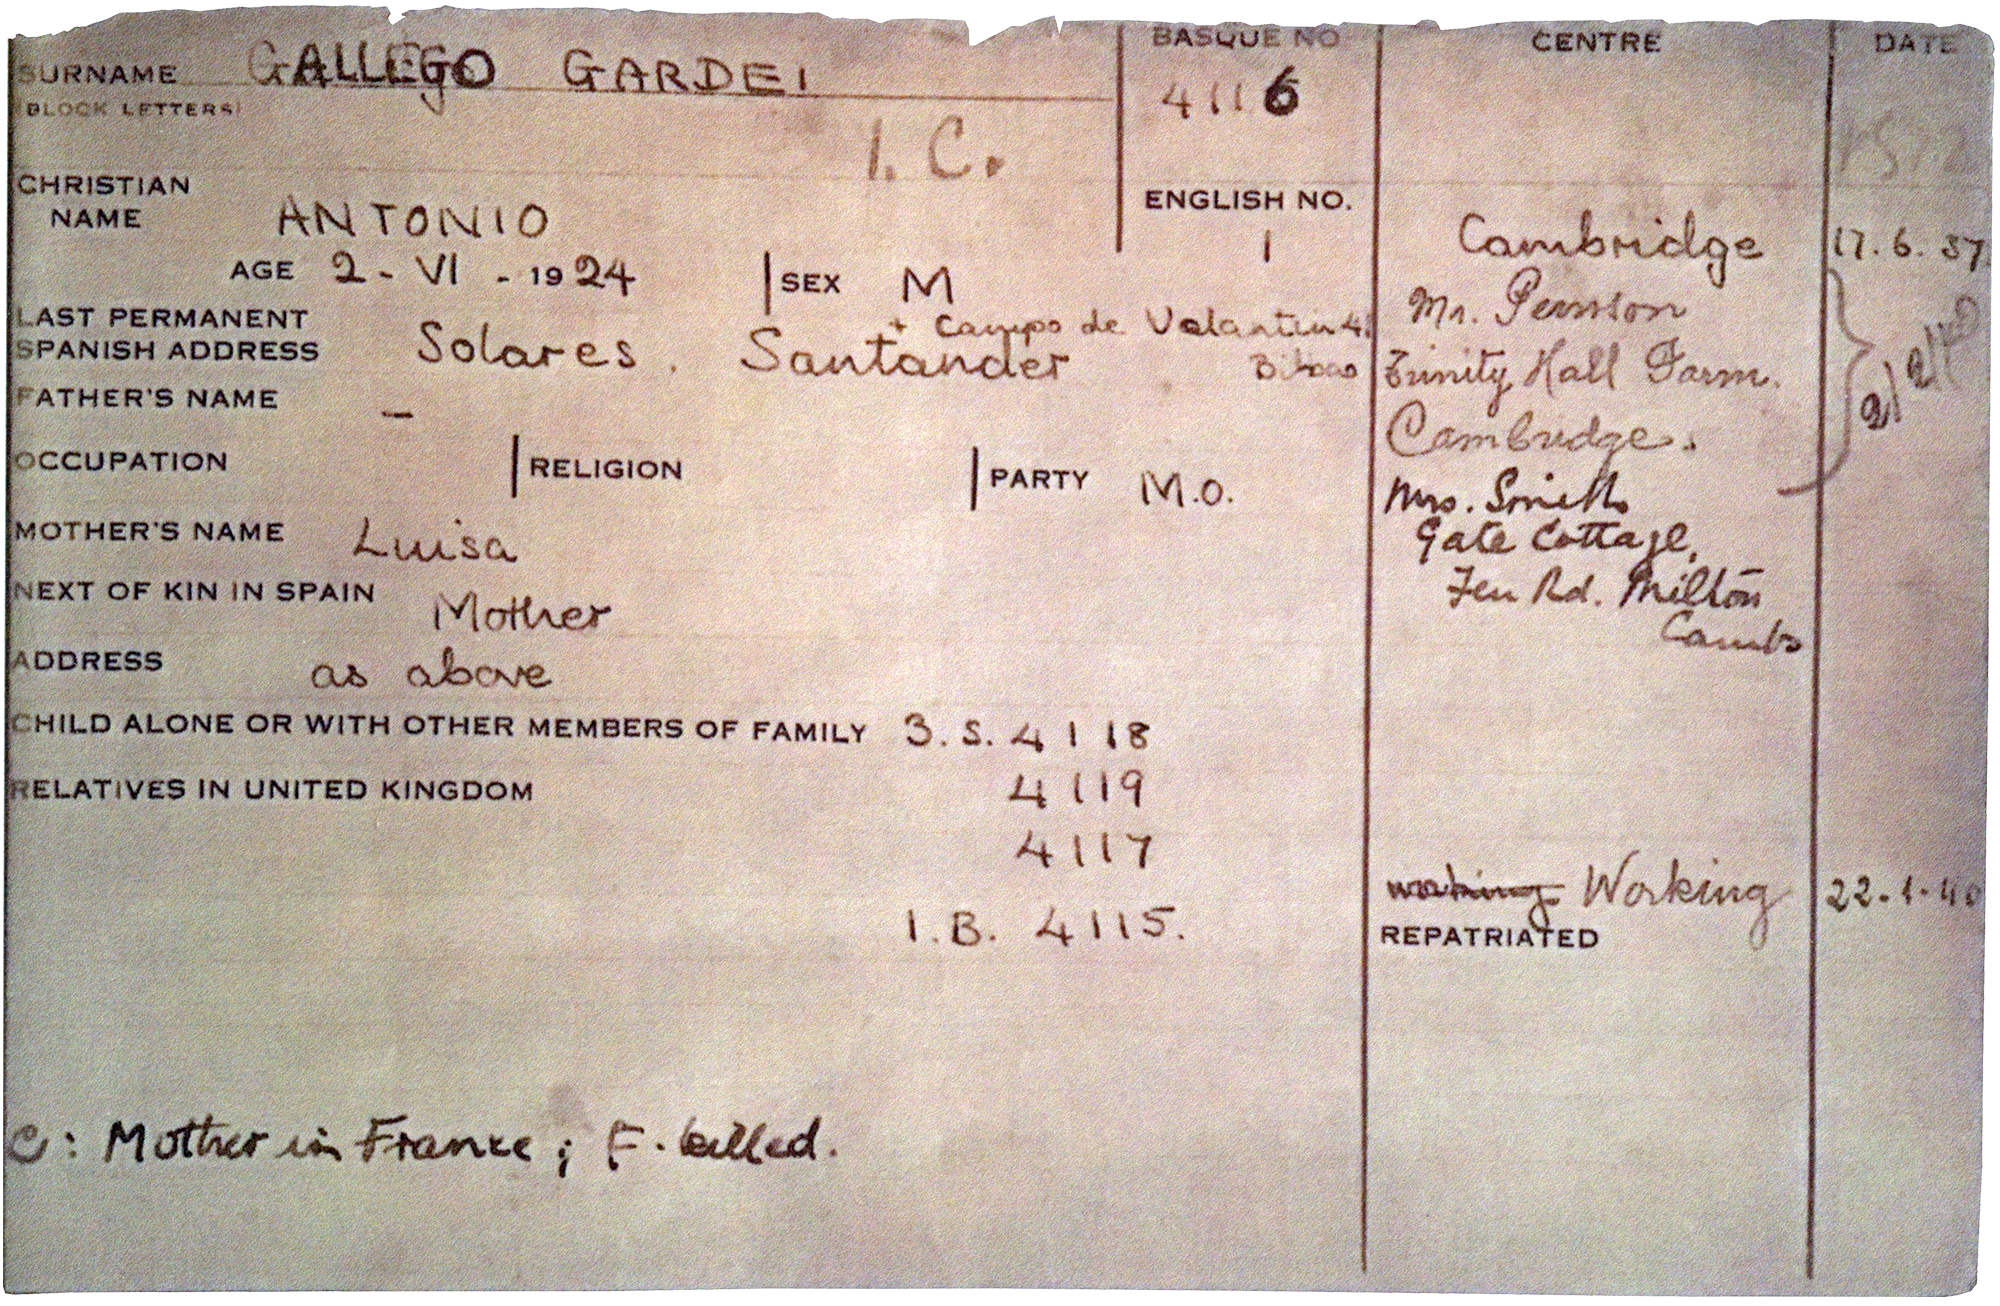 Photograph of Gardei Gallego's ficha - a document that recorded the name, address, next of kin, sex and religion of each Basque child sent to Britain.